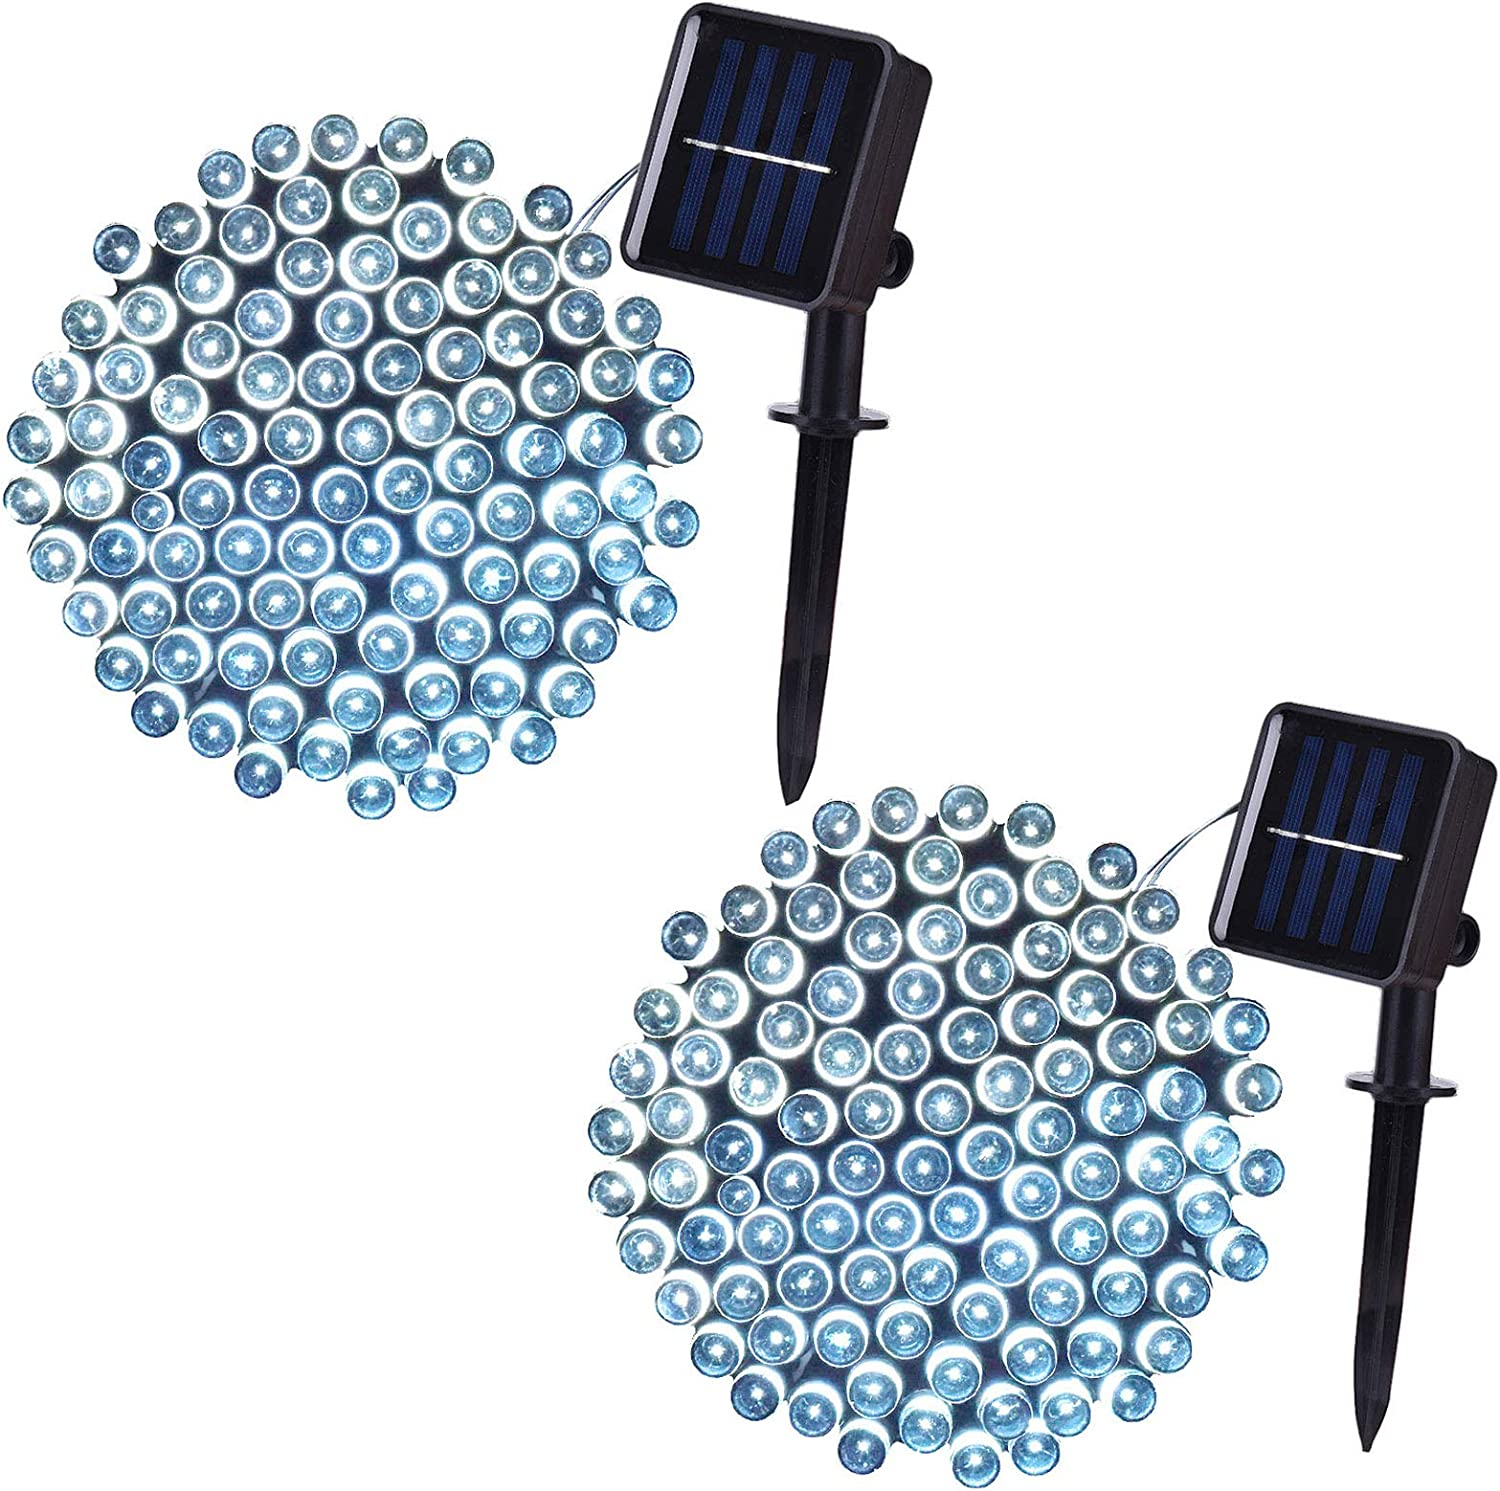 Solar String Lights Outdoor Waterproof, 39 ft 100-LED Solar Lights Outdoor, 8 Lighting Mode Solar Fairy Lights for Garden, Patio, Yard, Christmas Trees Wedding Party Decor (White, 2 Pack)